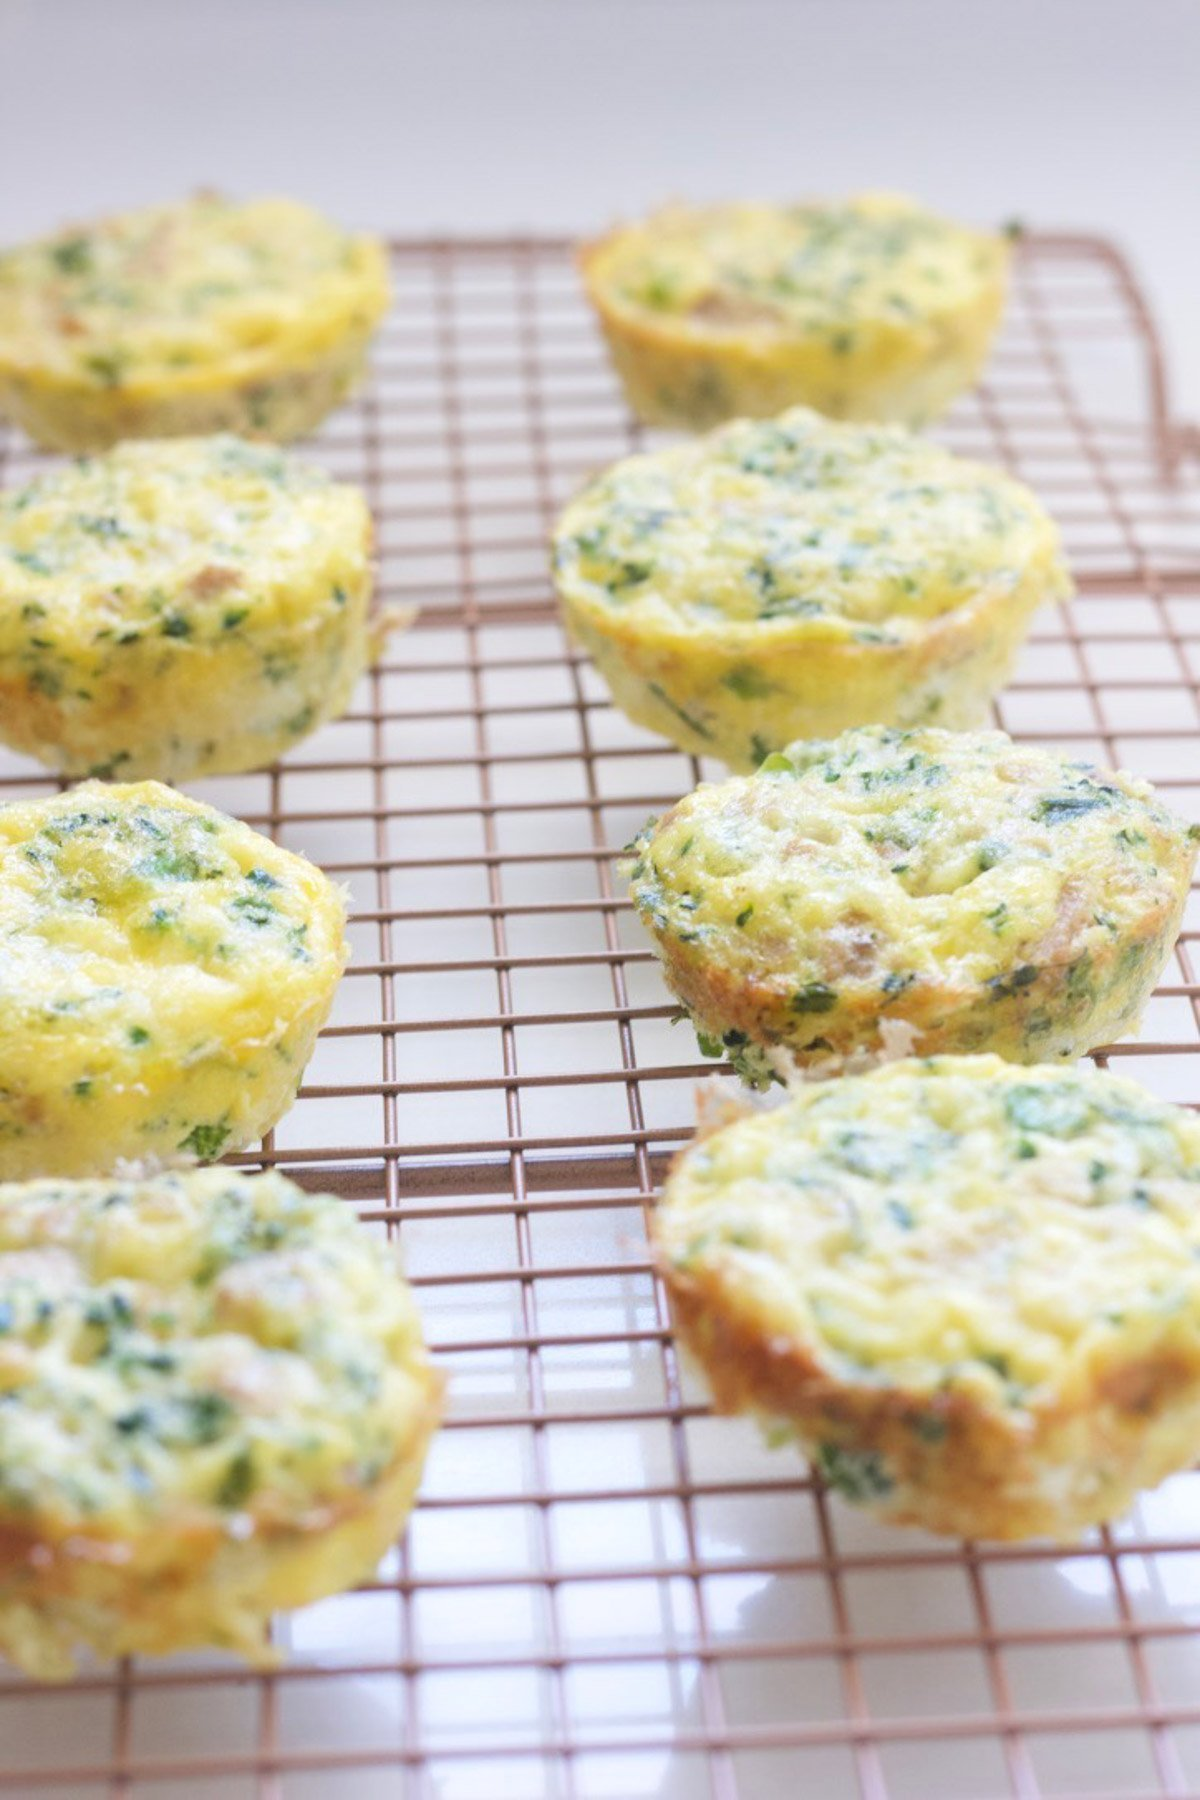 Mini broccoli cheese frittatas  on a cooling rack